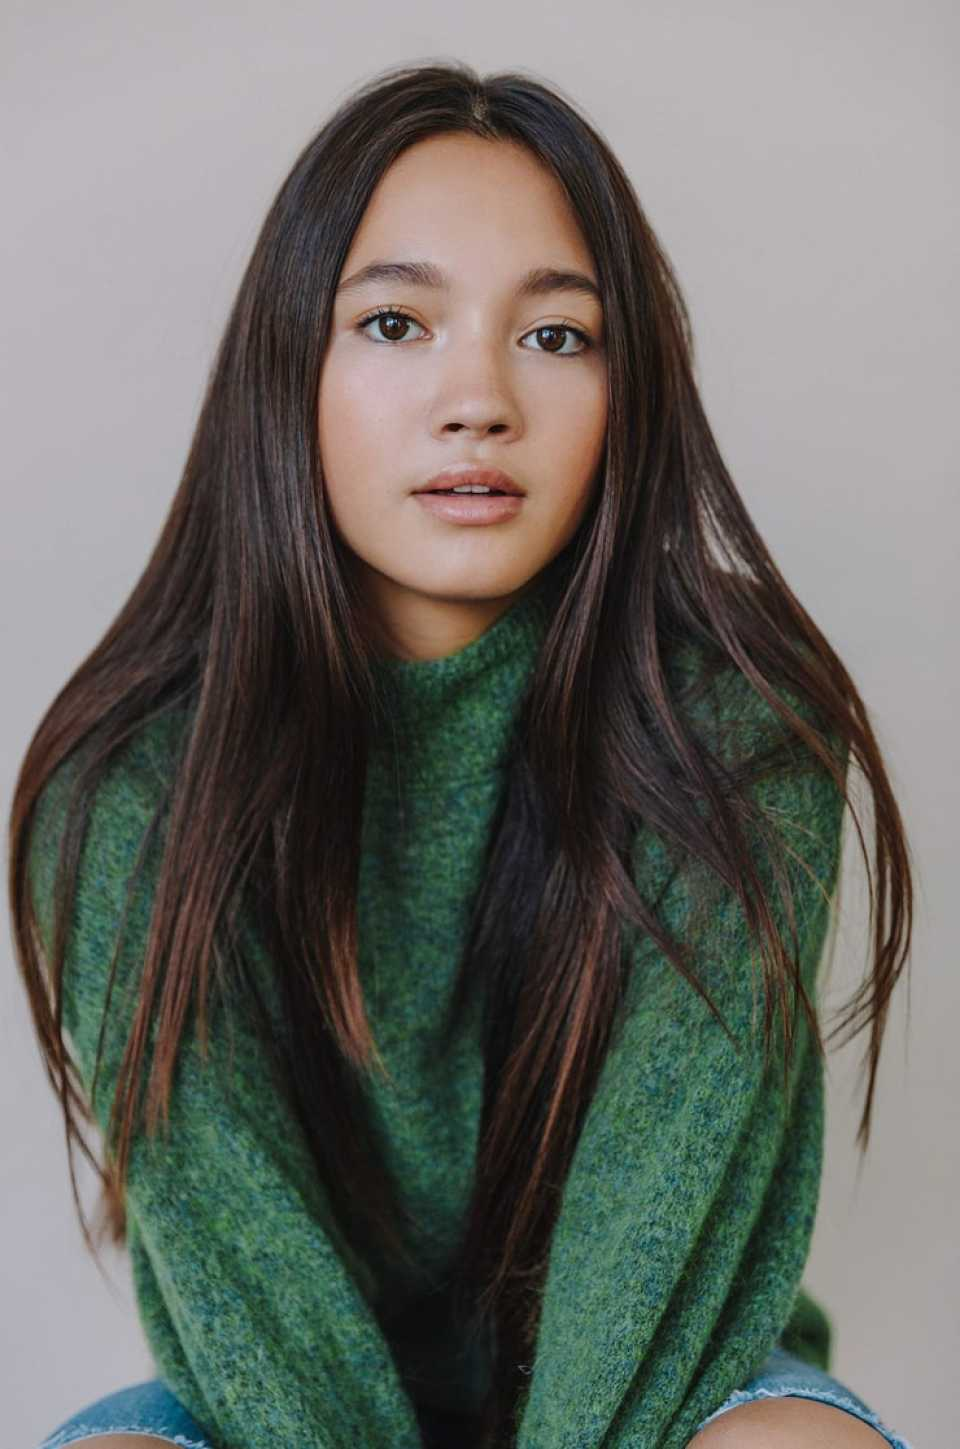 Lily Chee 2020 : Lily Chee – Personal pics-16